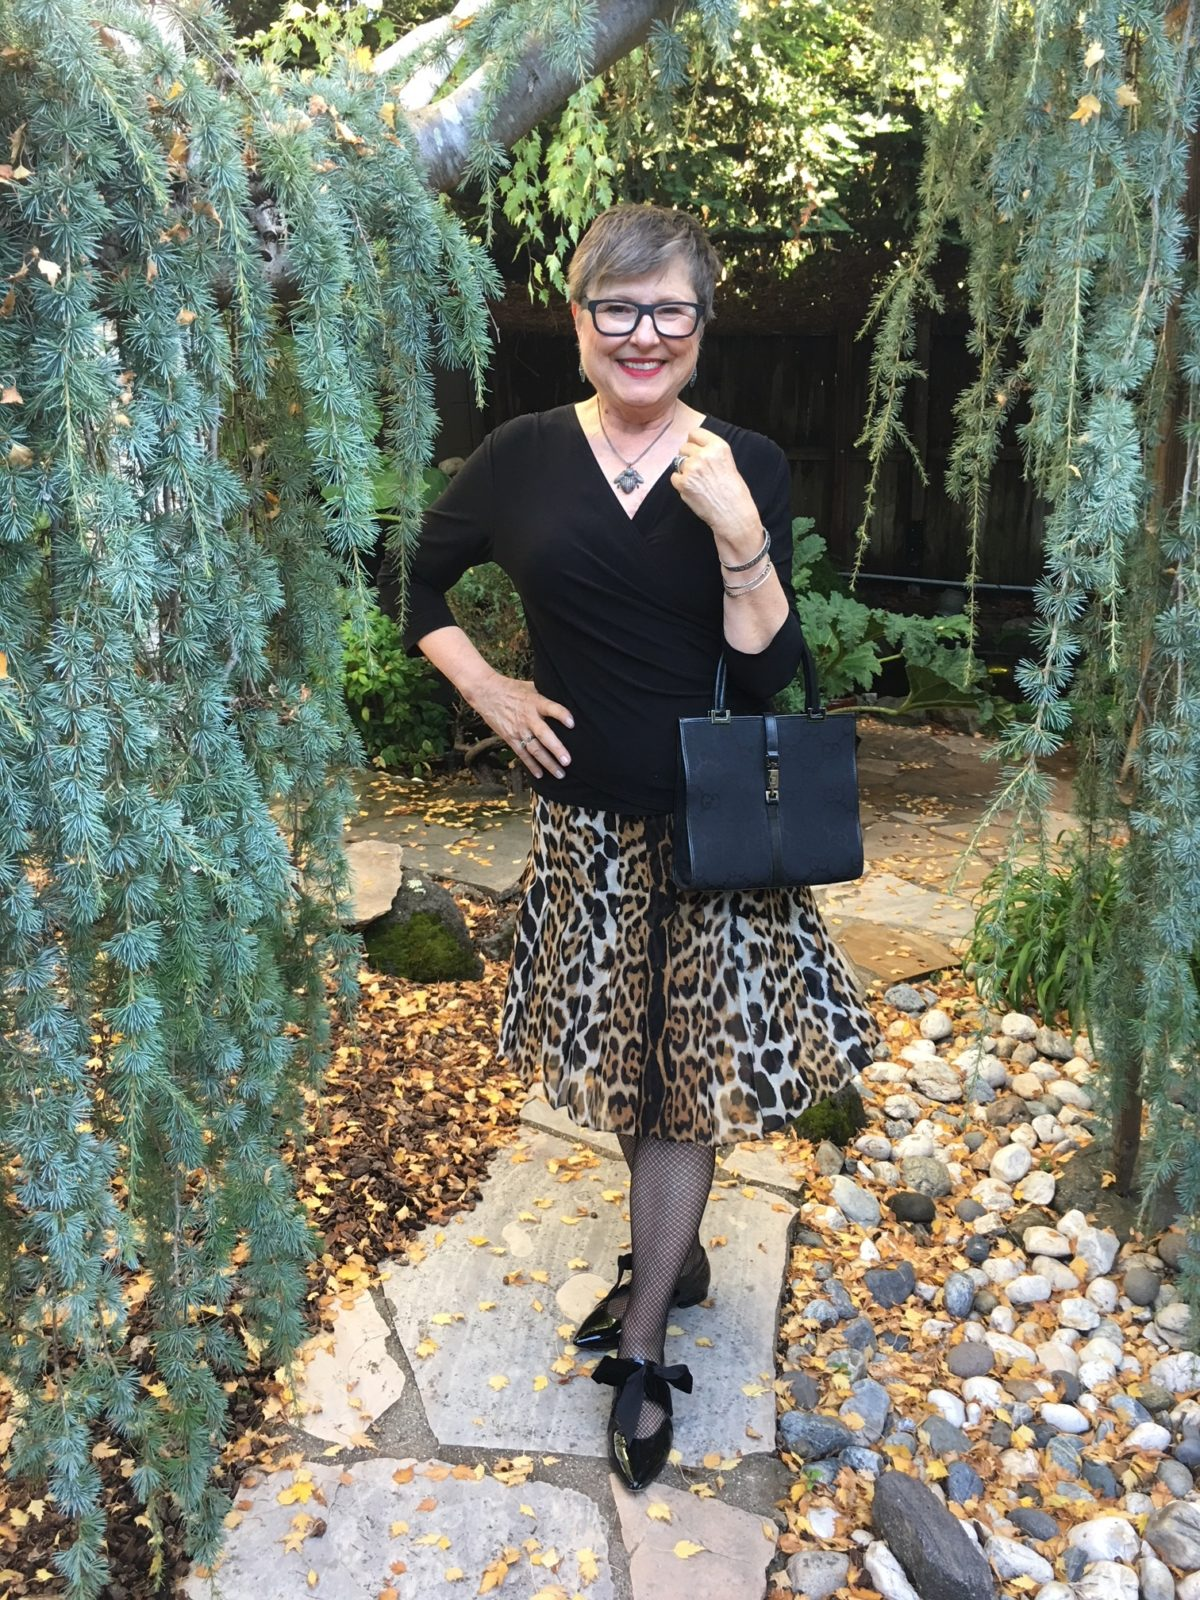 Styling outfit with leopard print